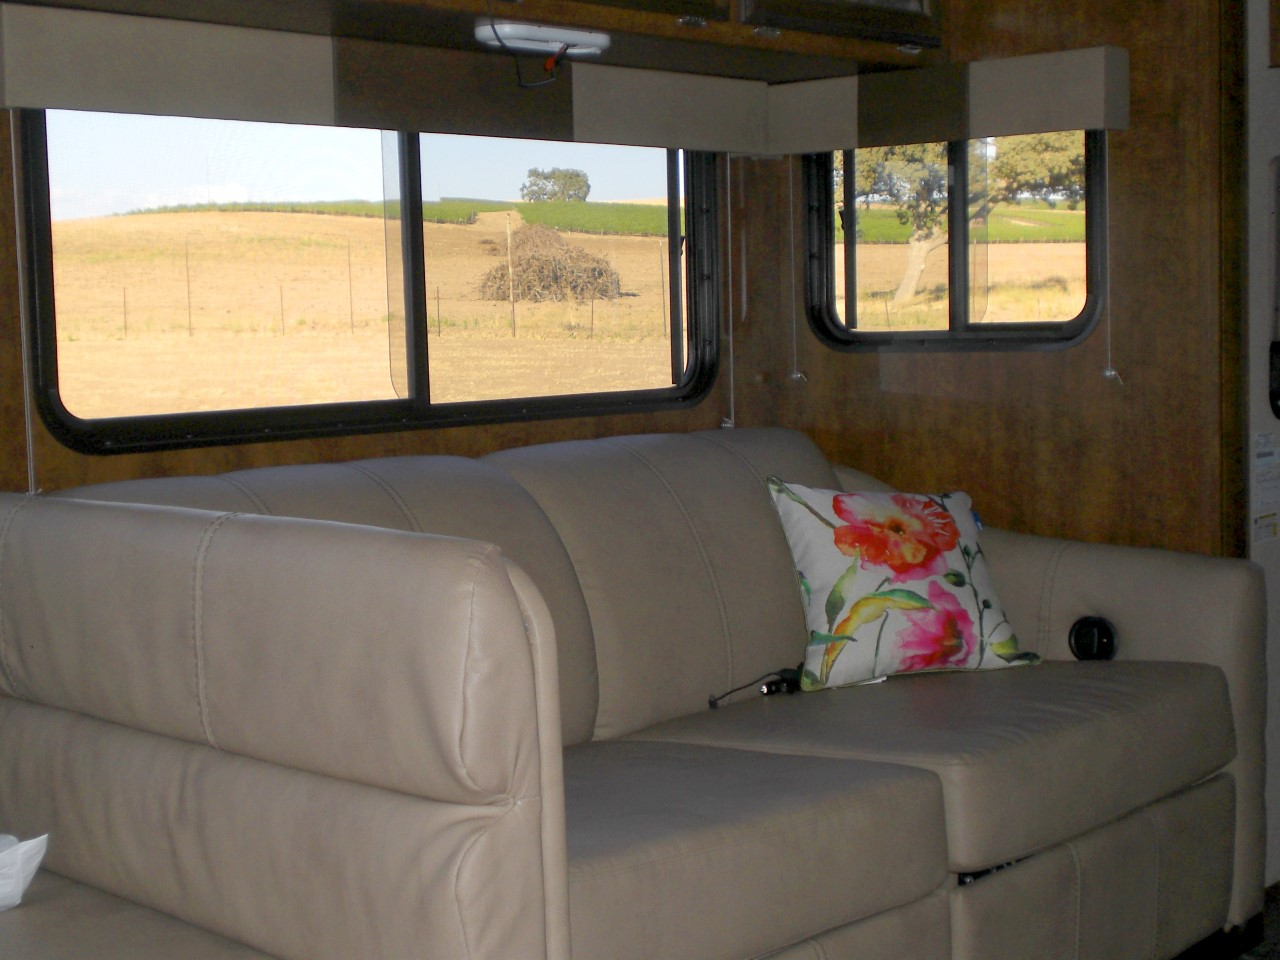 Tobin James Cellars - Harvest Host RV camping